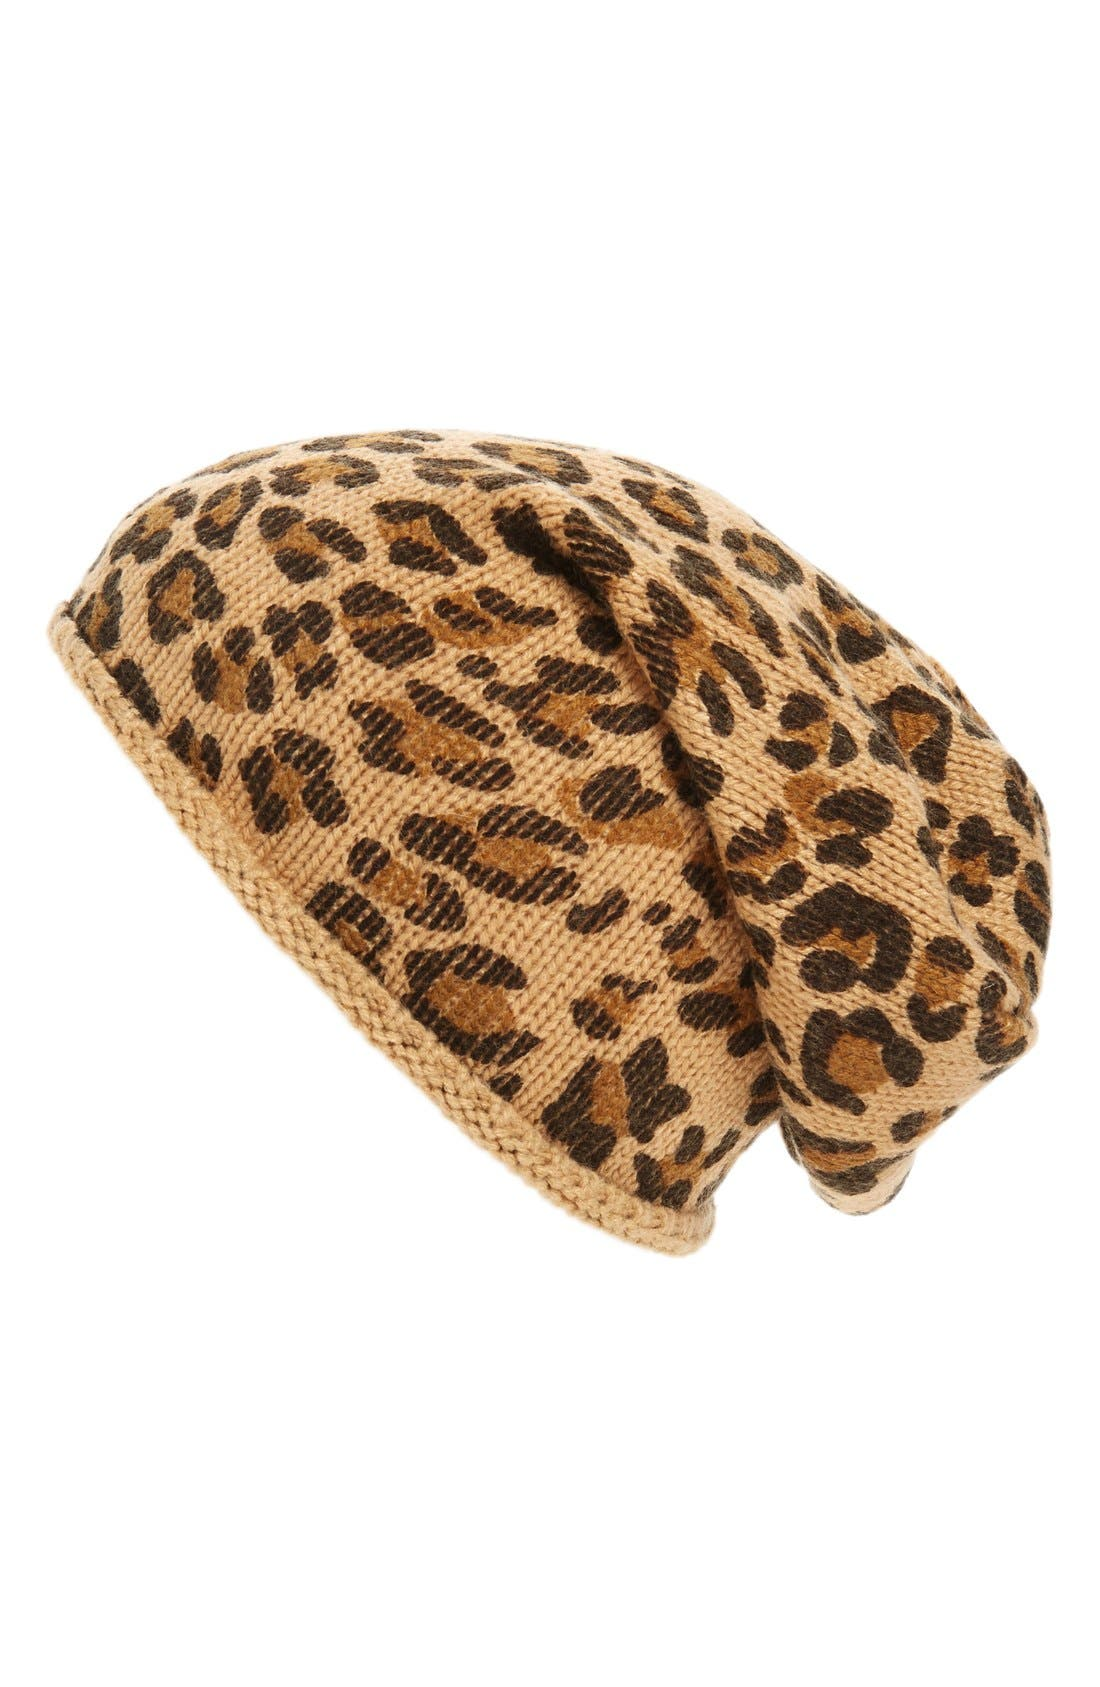 Alternate Image 1 Selected - BP. Leopard Print Slouchy Beanie